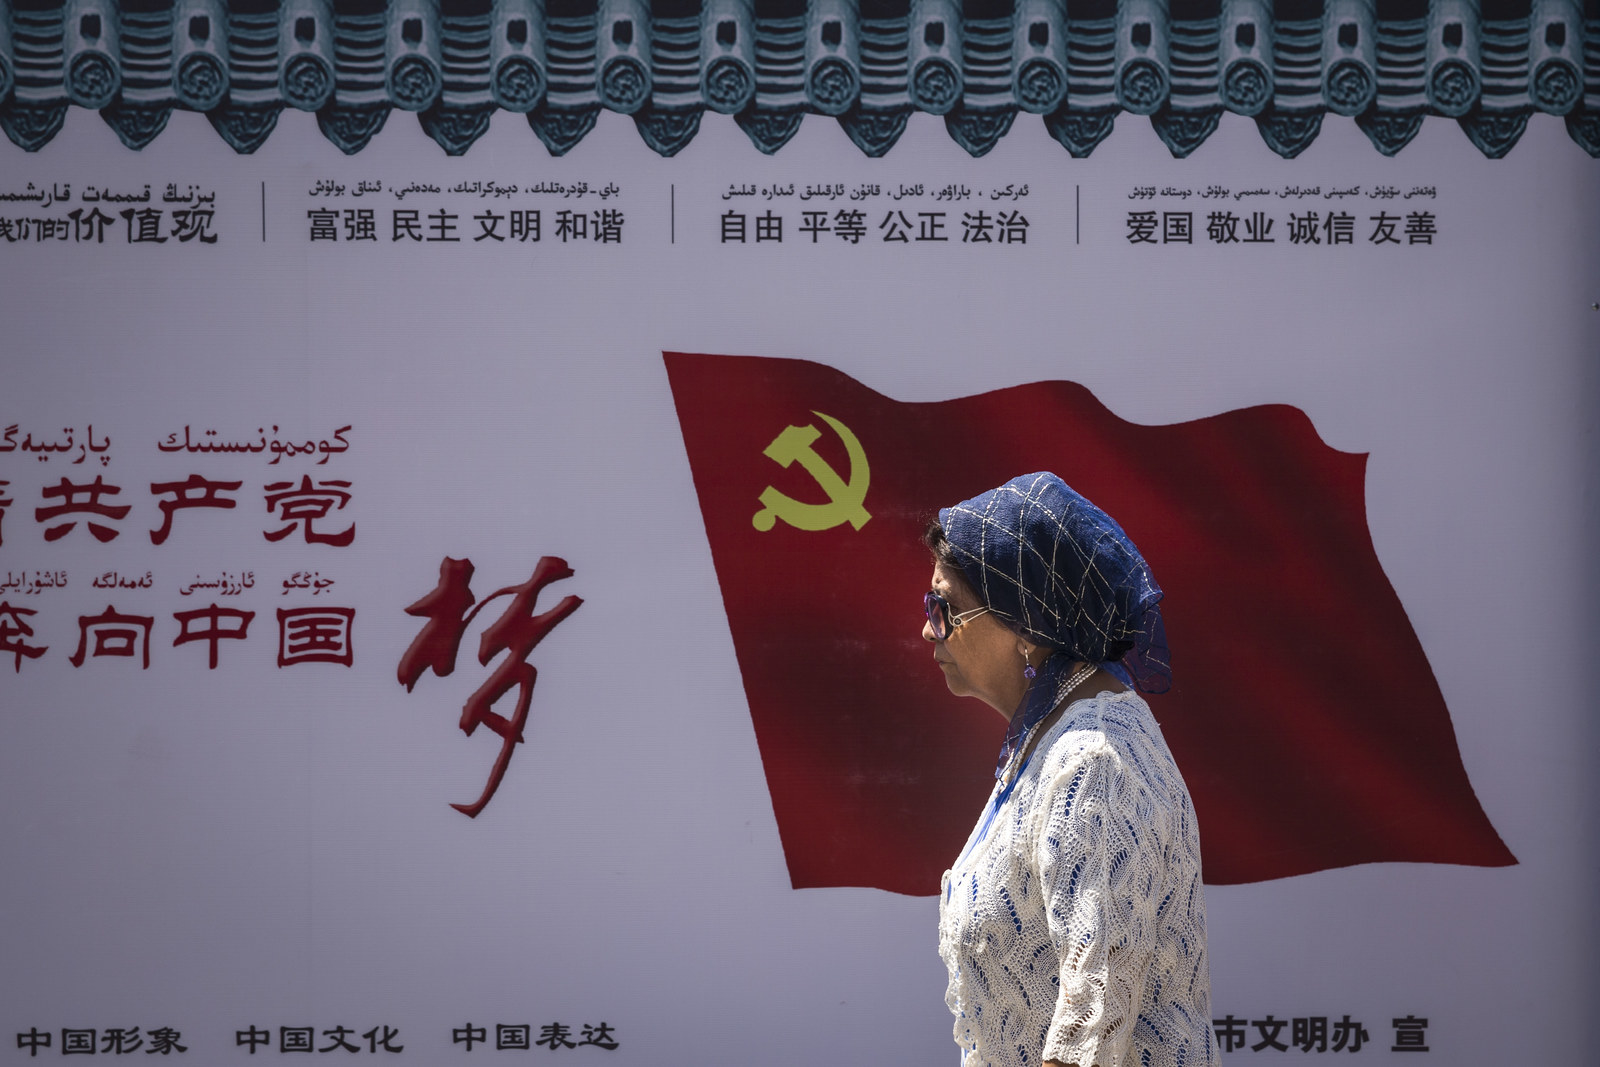 A Uighur woman passes the Communist Party of China flag on the wall on June 27, 2017, in Ürümqi, China.